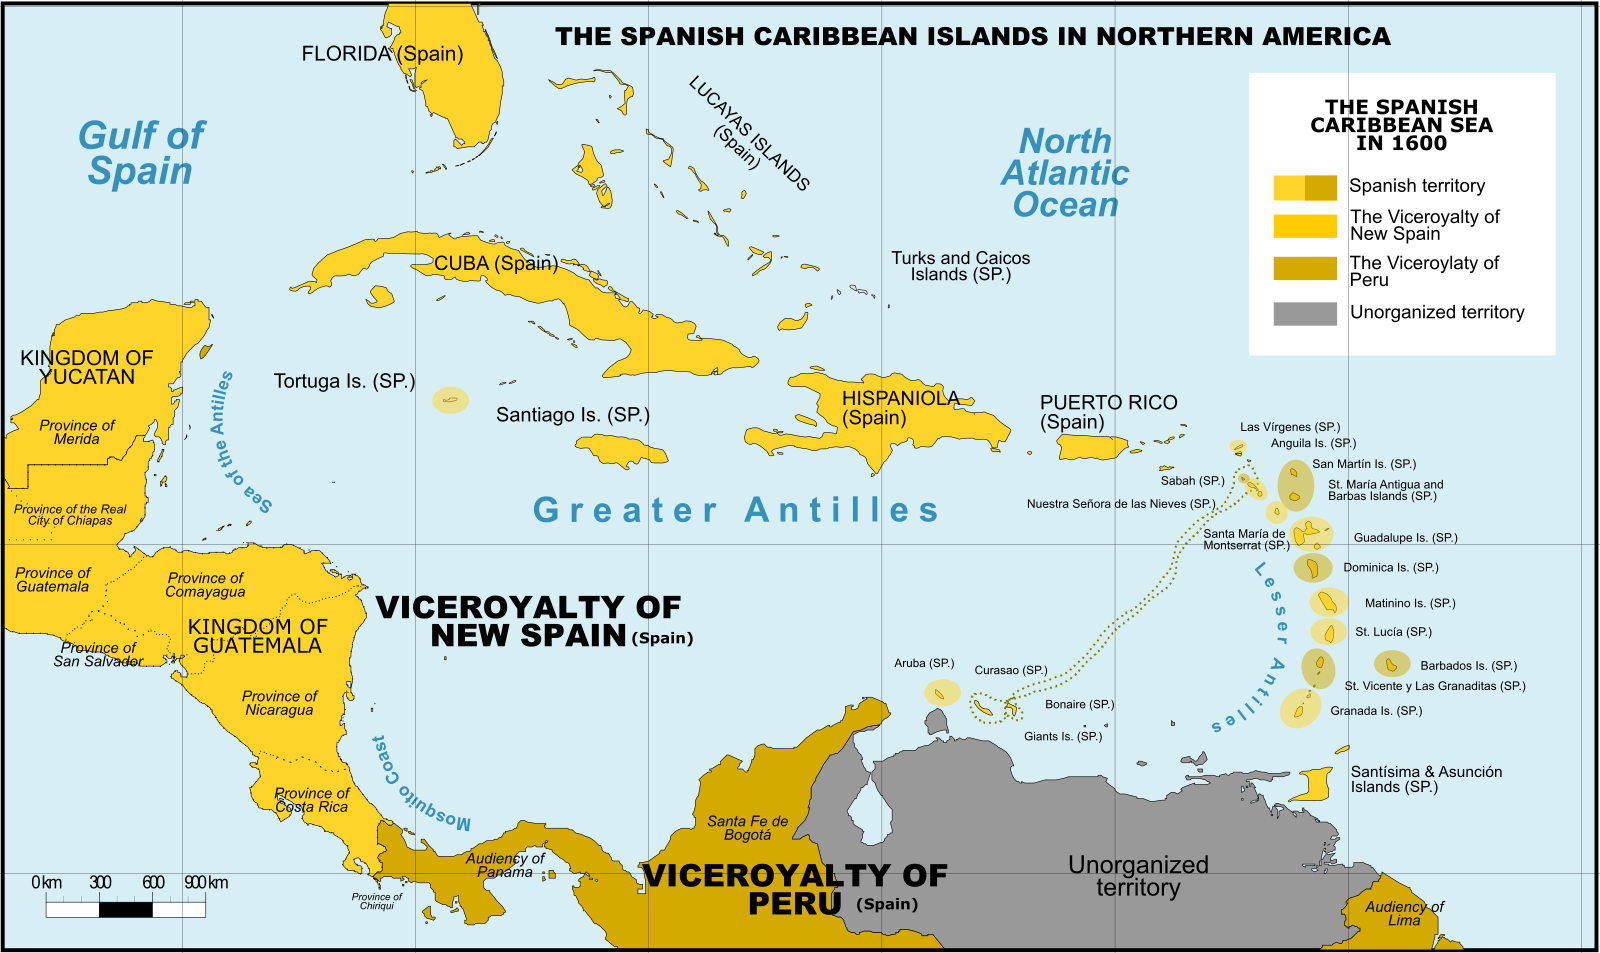 Filespanish caribbean islands in the american viceroyalties 1600 filespanish caribbean islands in the american viceroyalties 1600g gumiabroncs